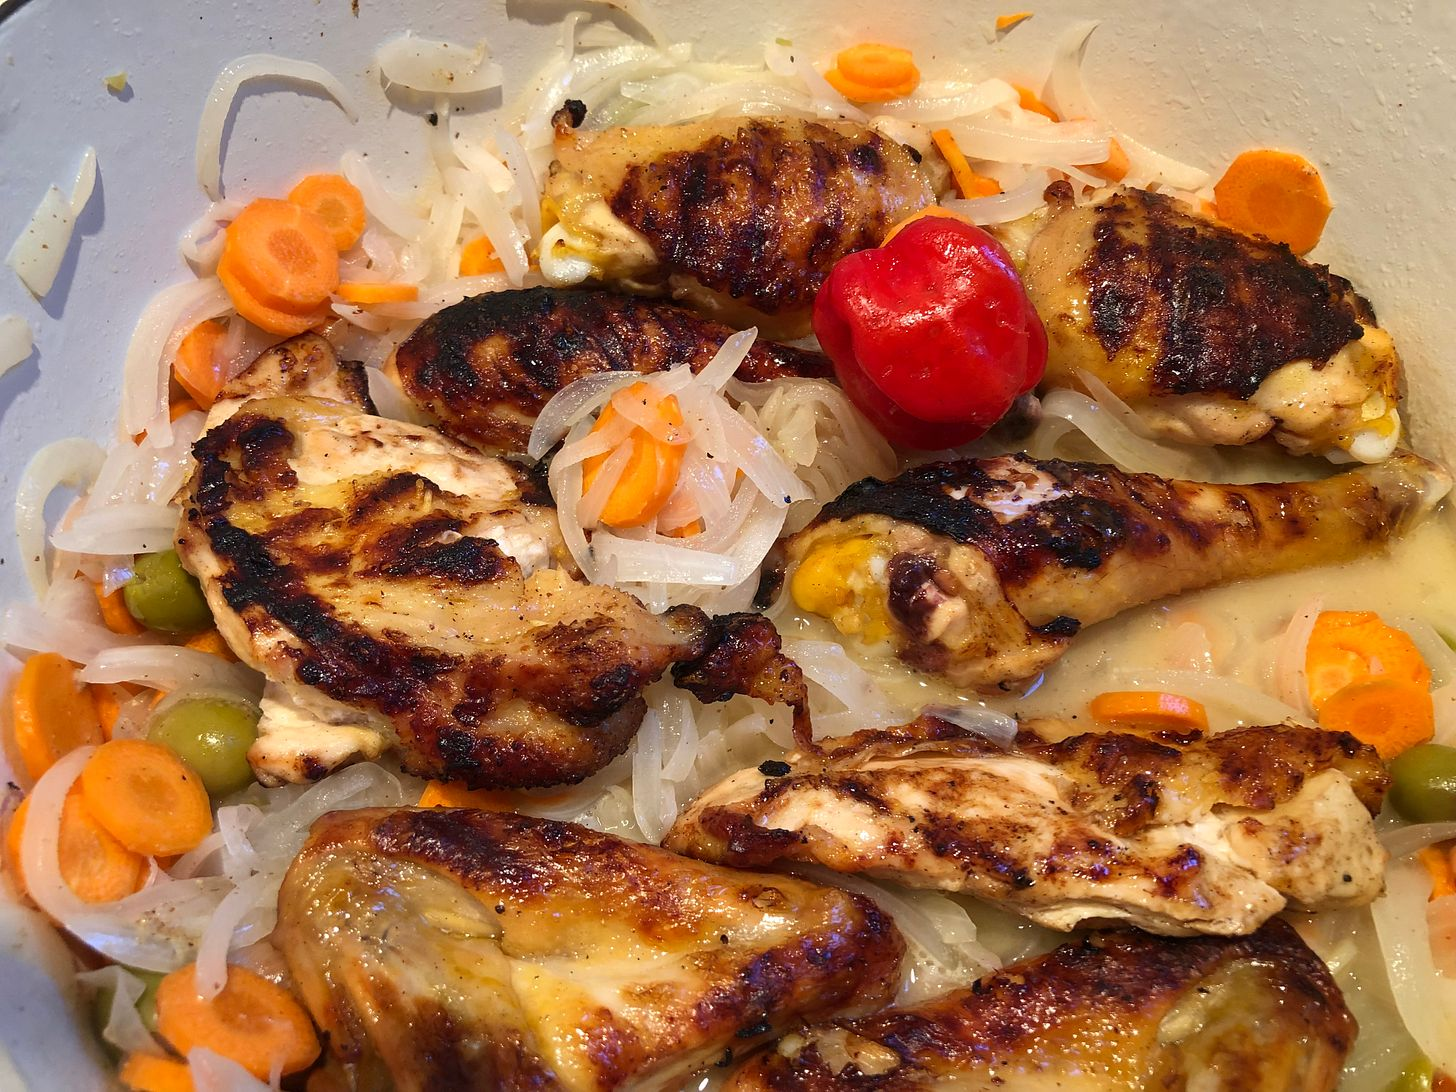 Grilled chicken pieces simmering in a dutch oven with onion, carrots, olives and marinade.